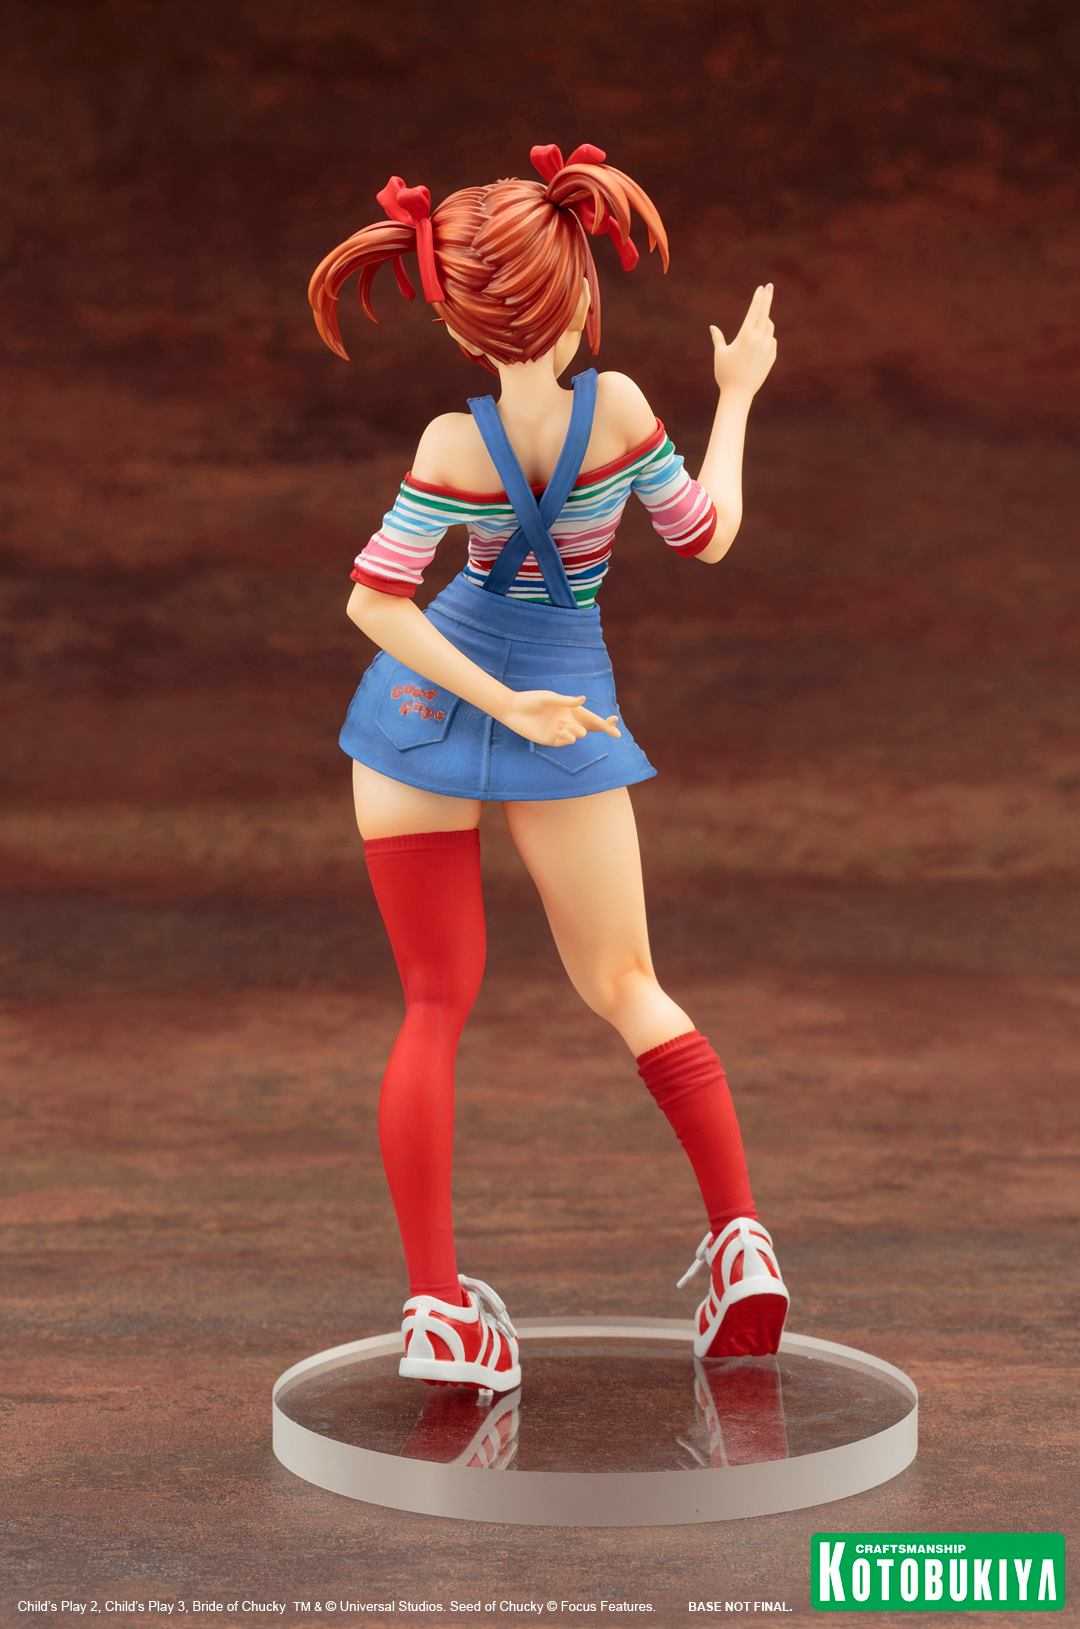 childs-play-chucky-exclusive-deluxe-version-bishoujo-statue-kotobukiya-3a